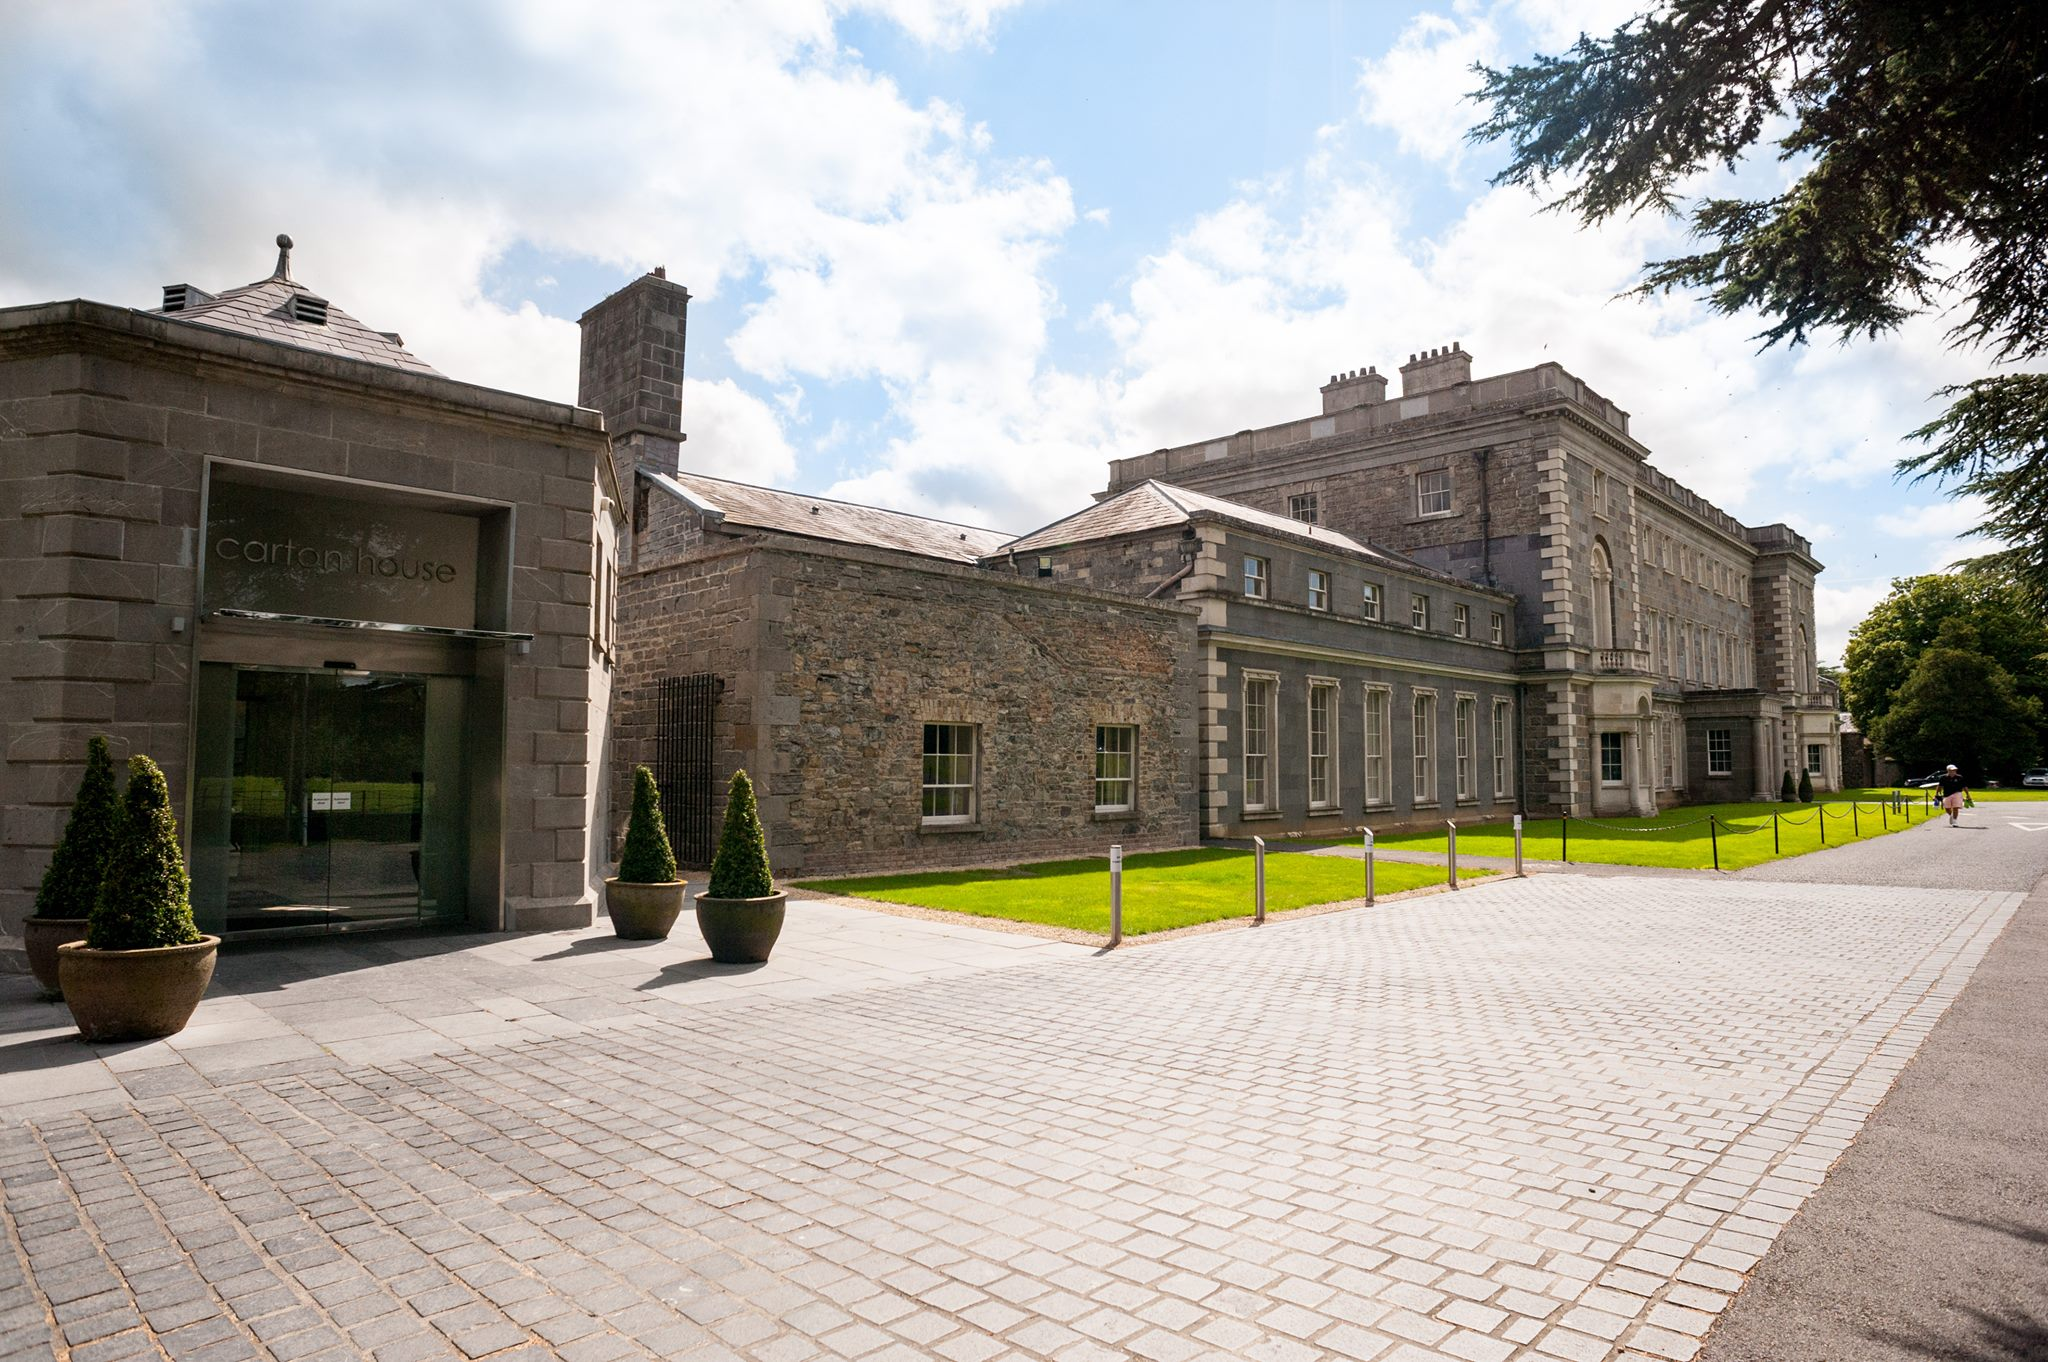 Hotel Fitout-Carton House-Entrance